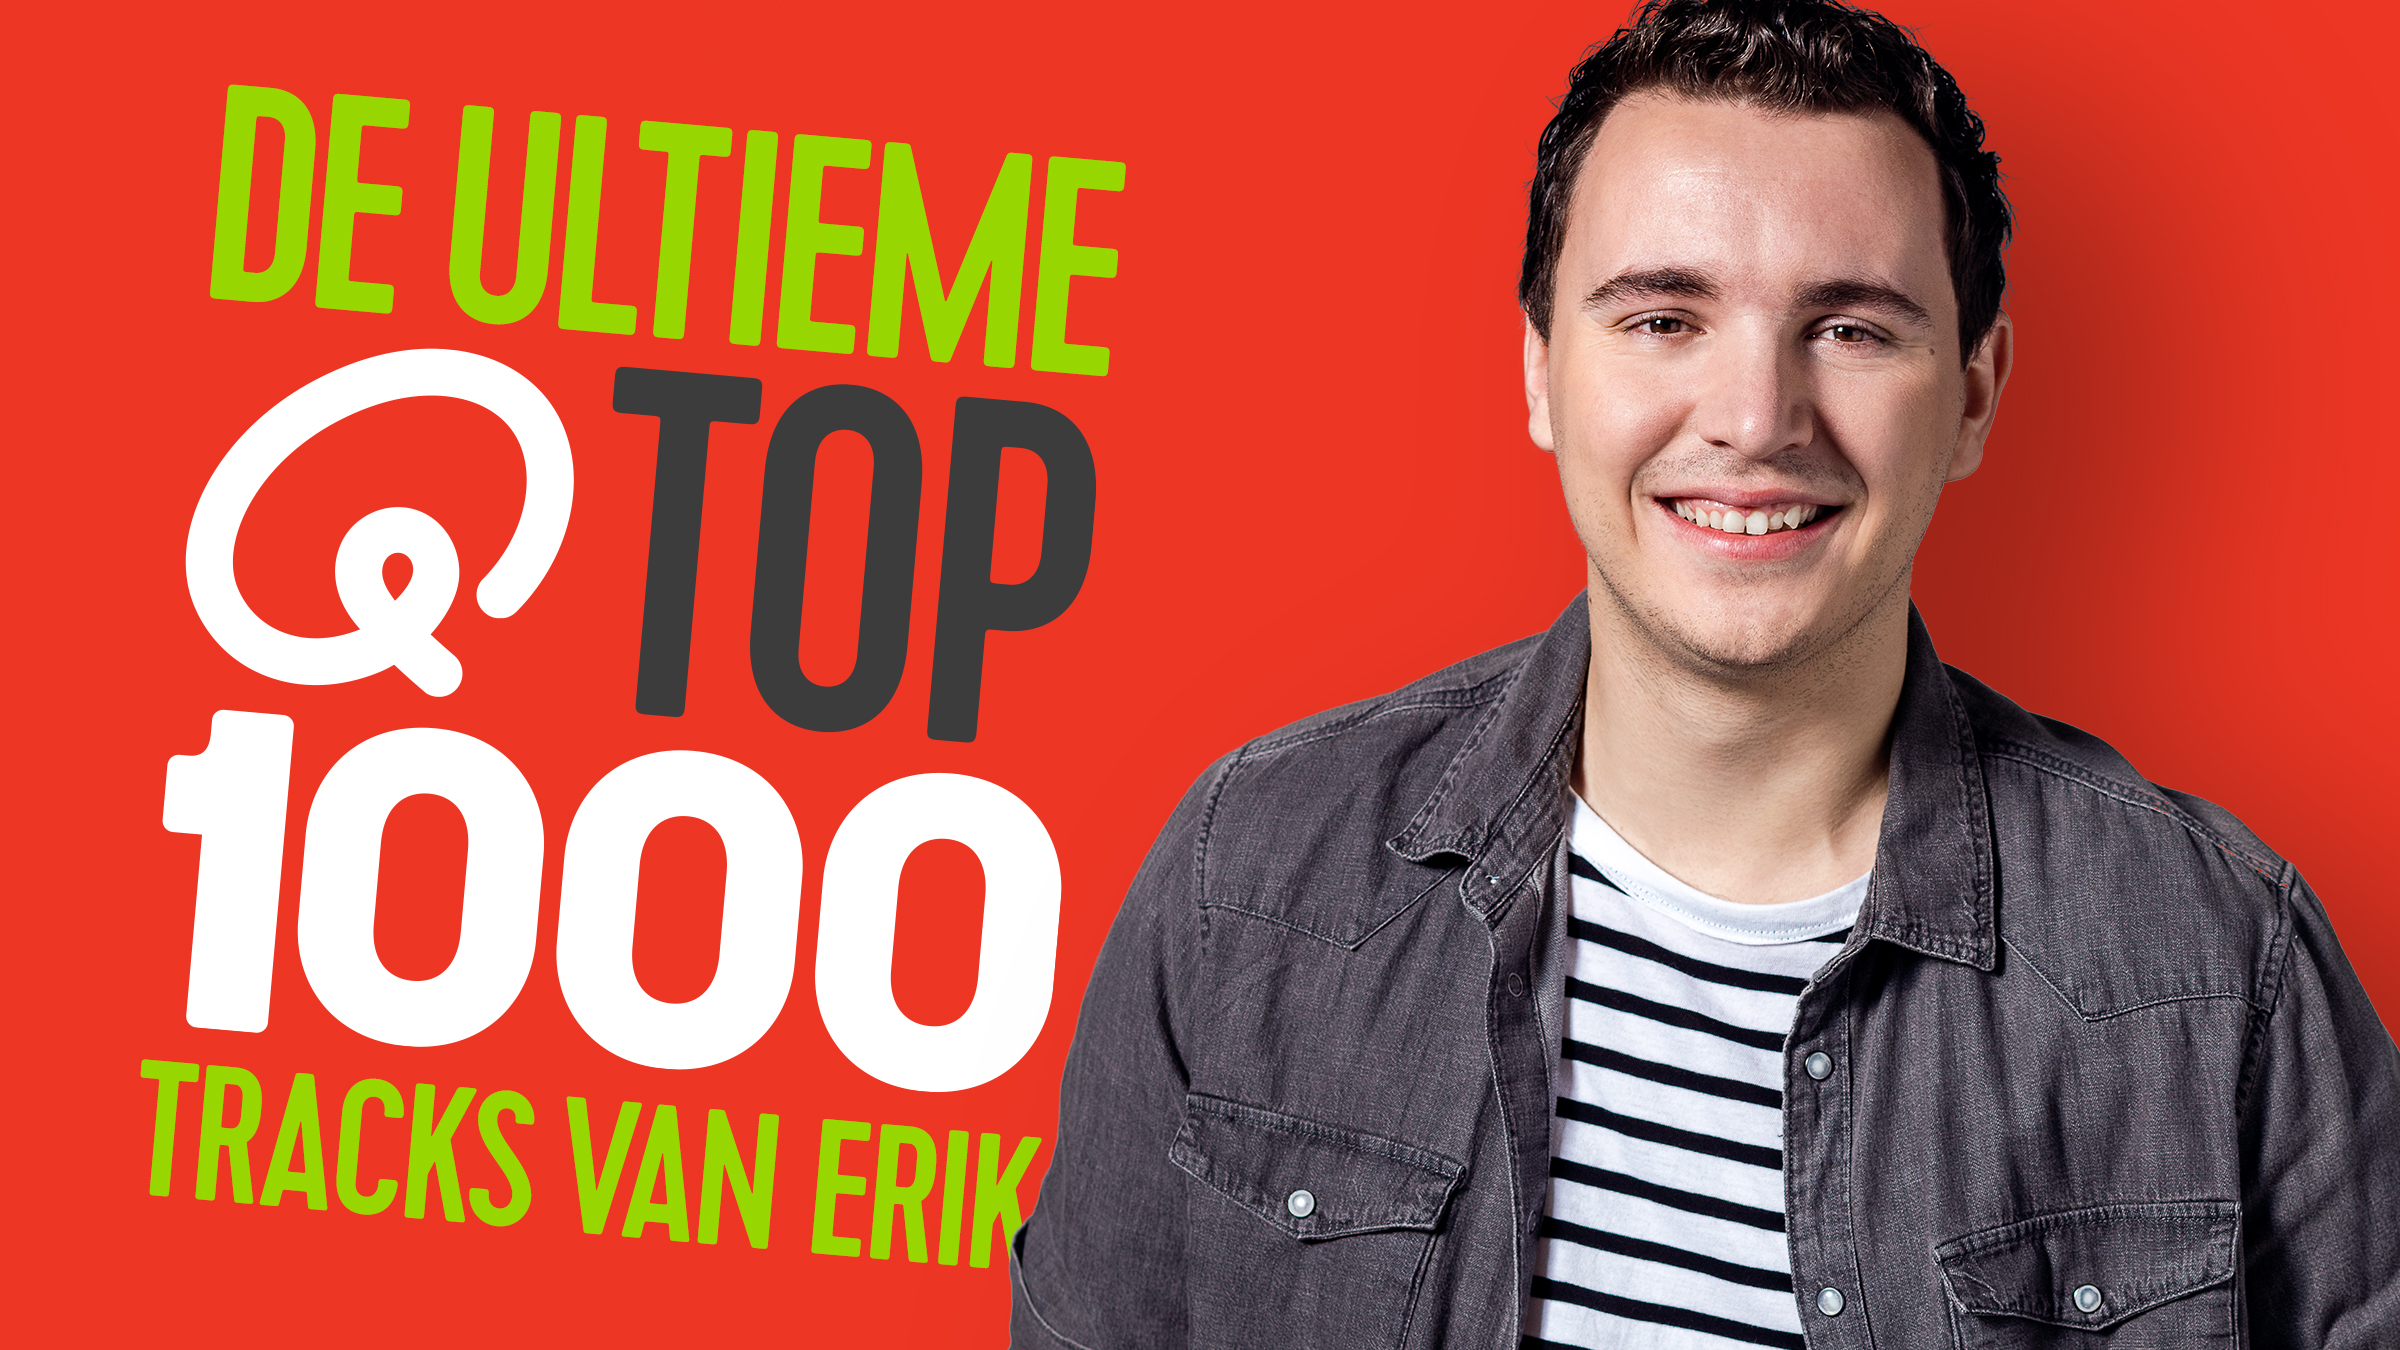 Qmusic teaser qtop1000 dj erik